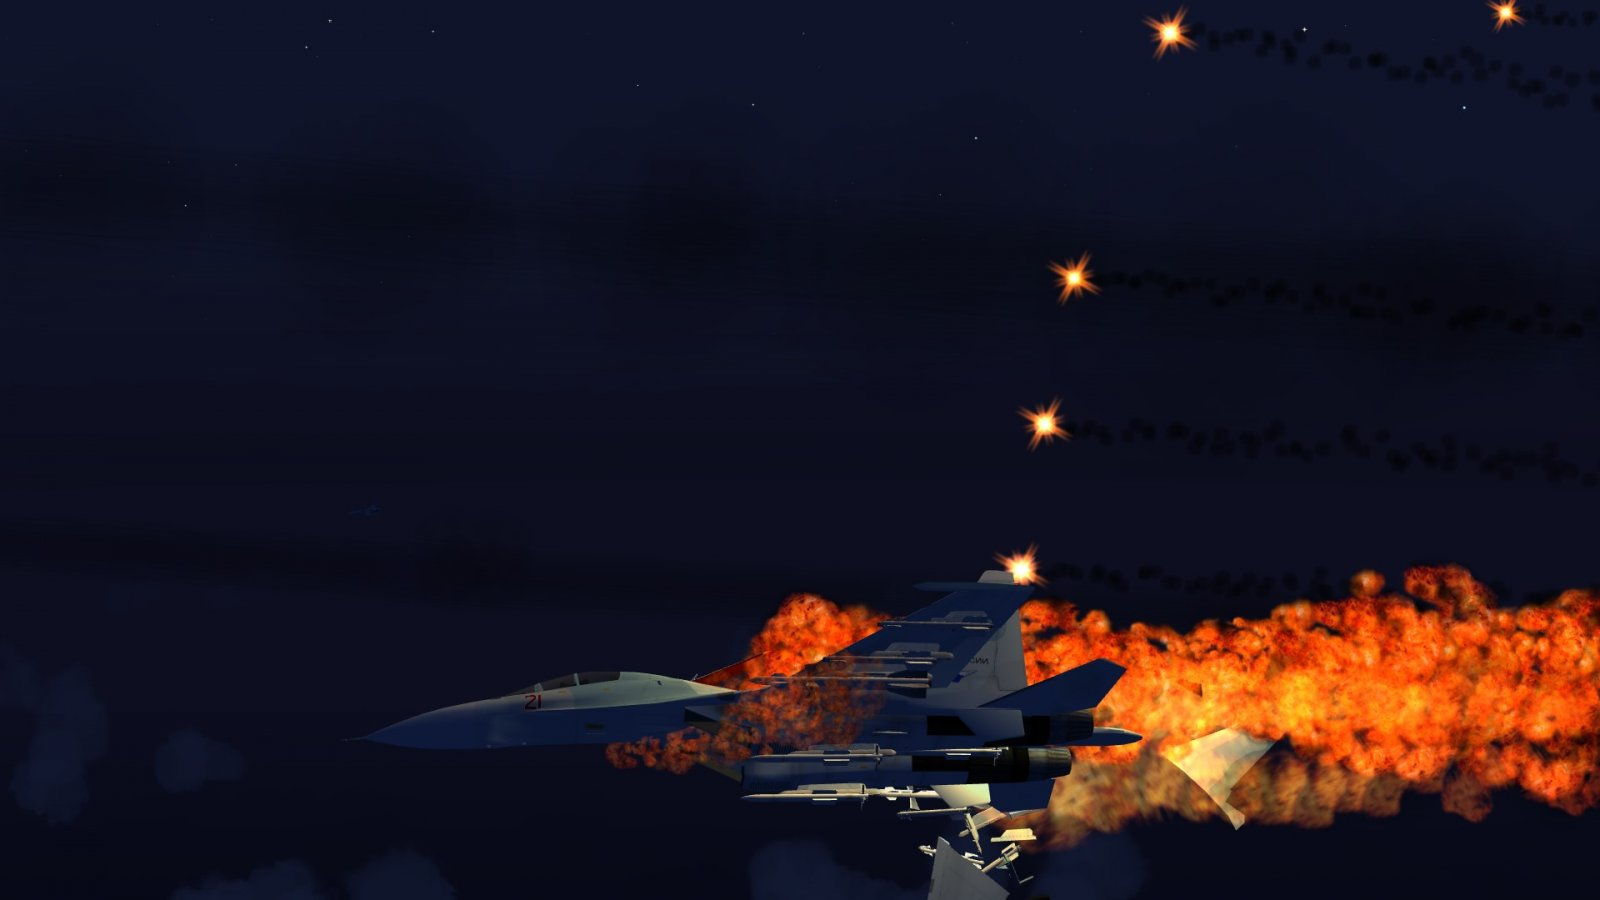 Apparently the Su-30's Flares Didn't Work